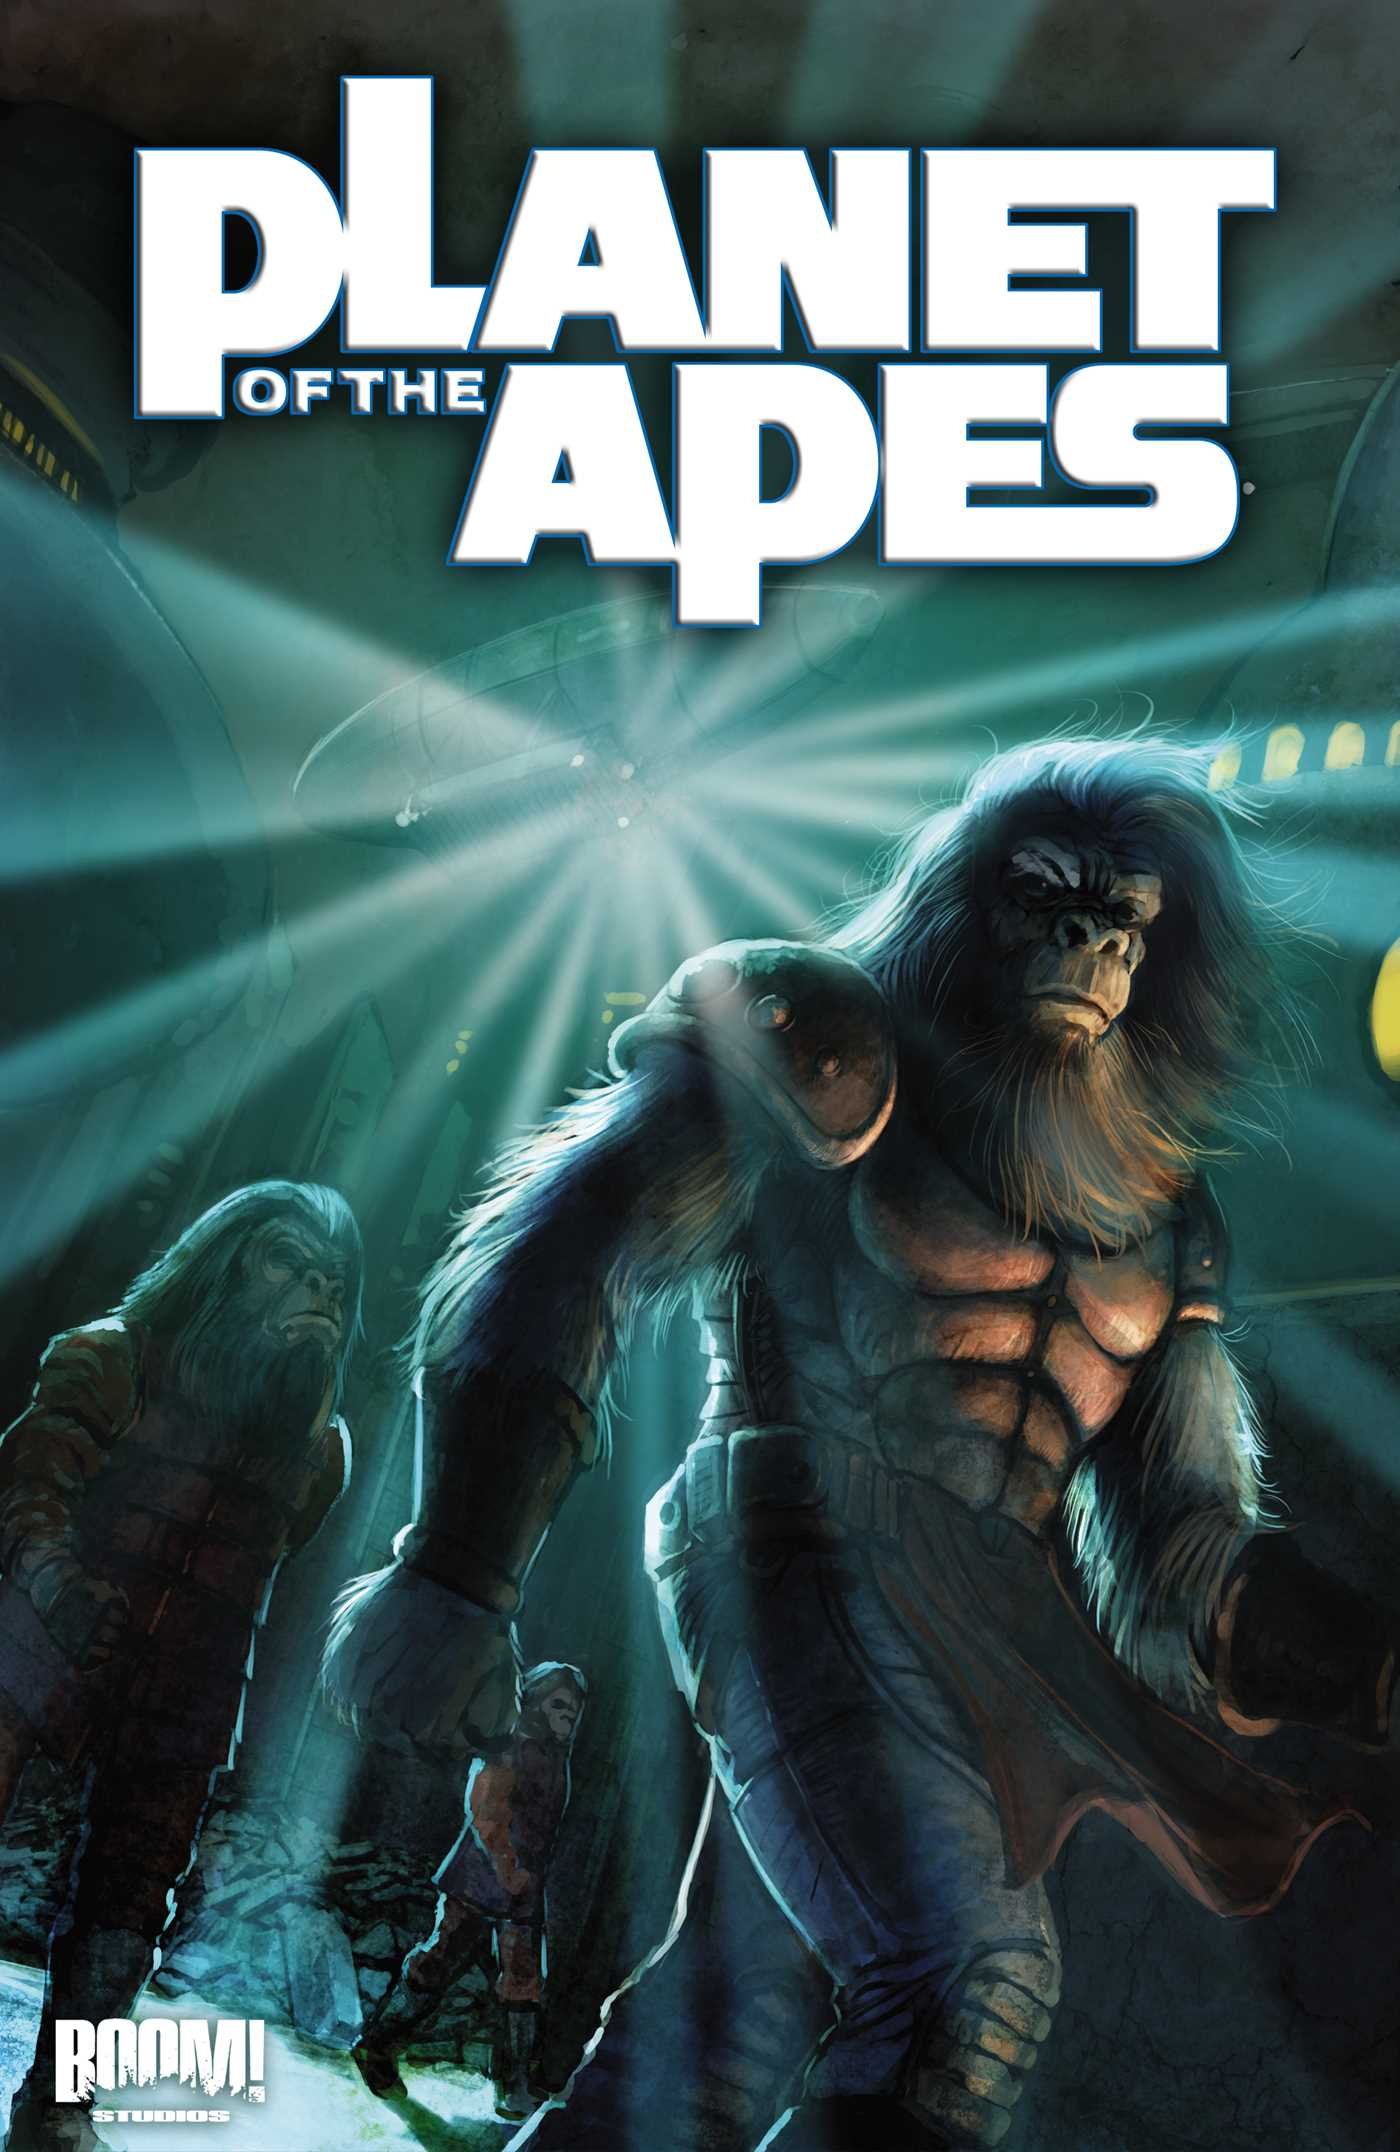 Planet of the apes vol 2 the devils pawn 9781608866694 hr